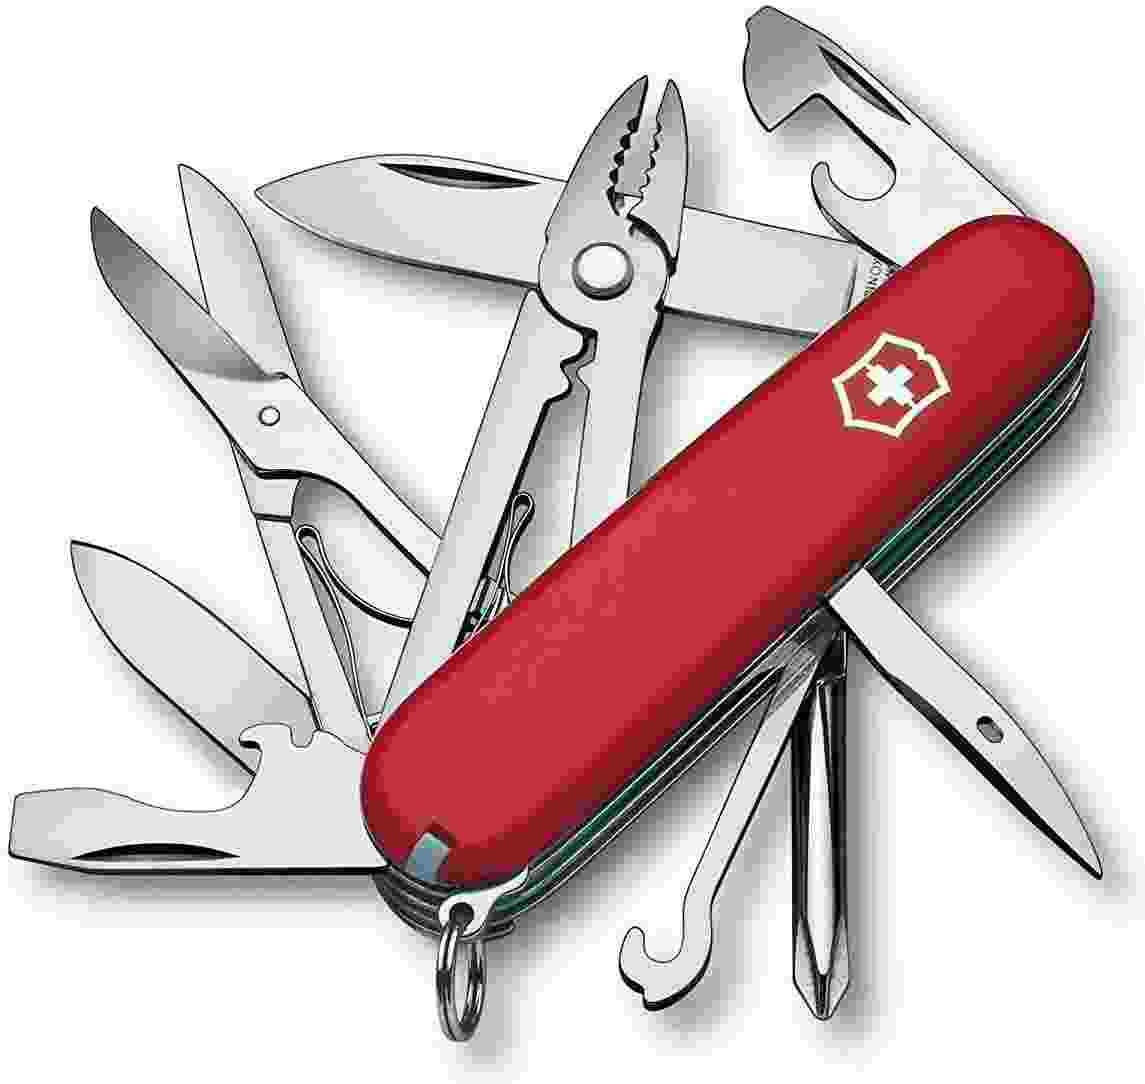 Best Swiss Army Knife For EDC